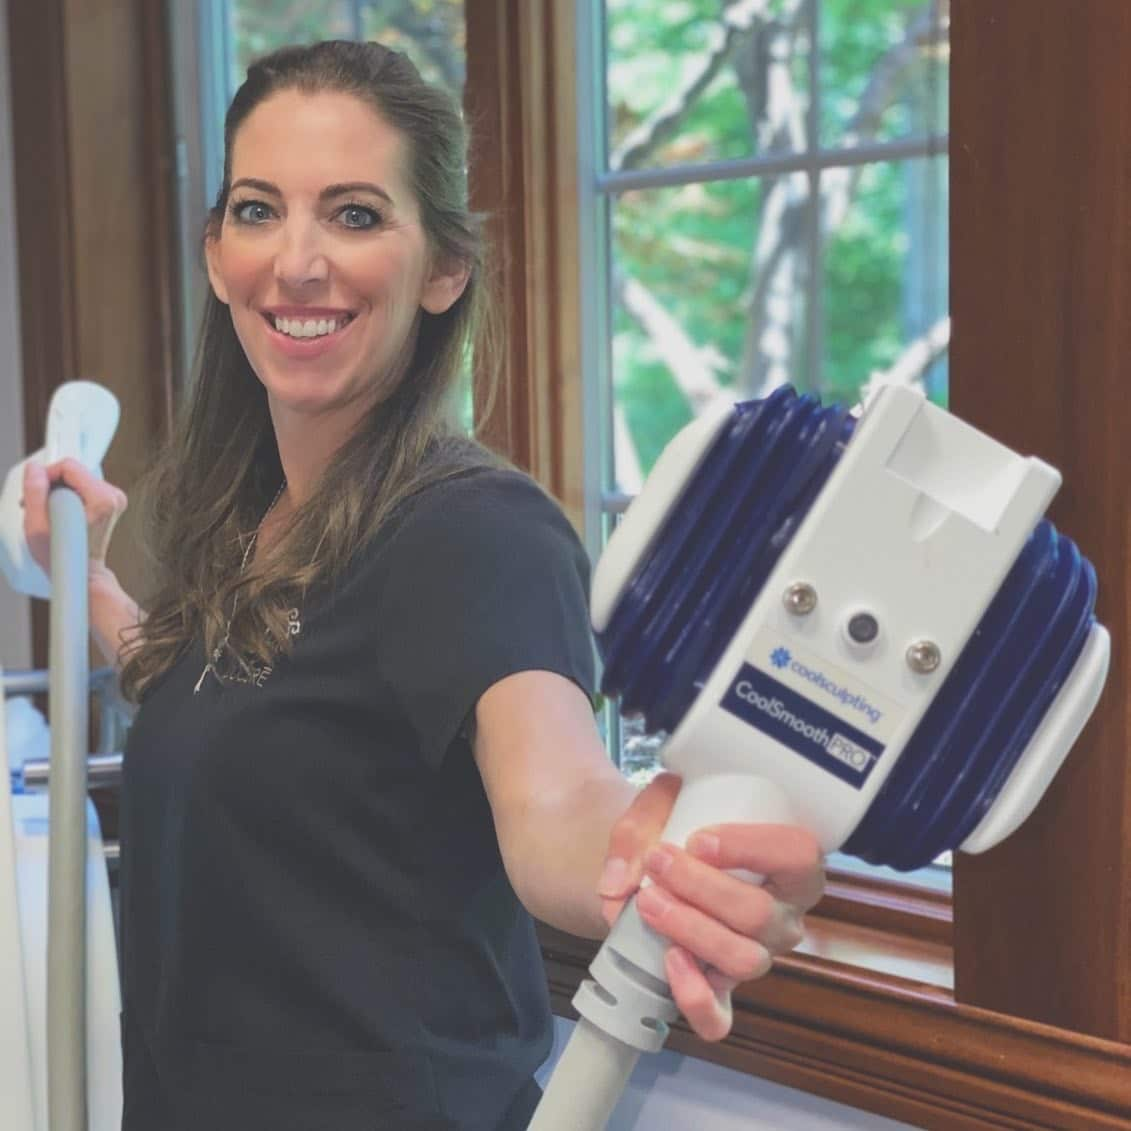 Staff member at Docere holding the coolsculpting